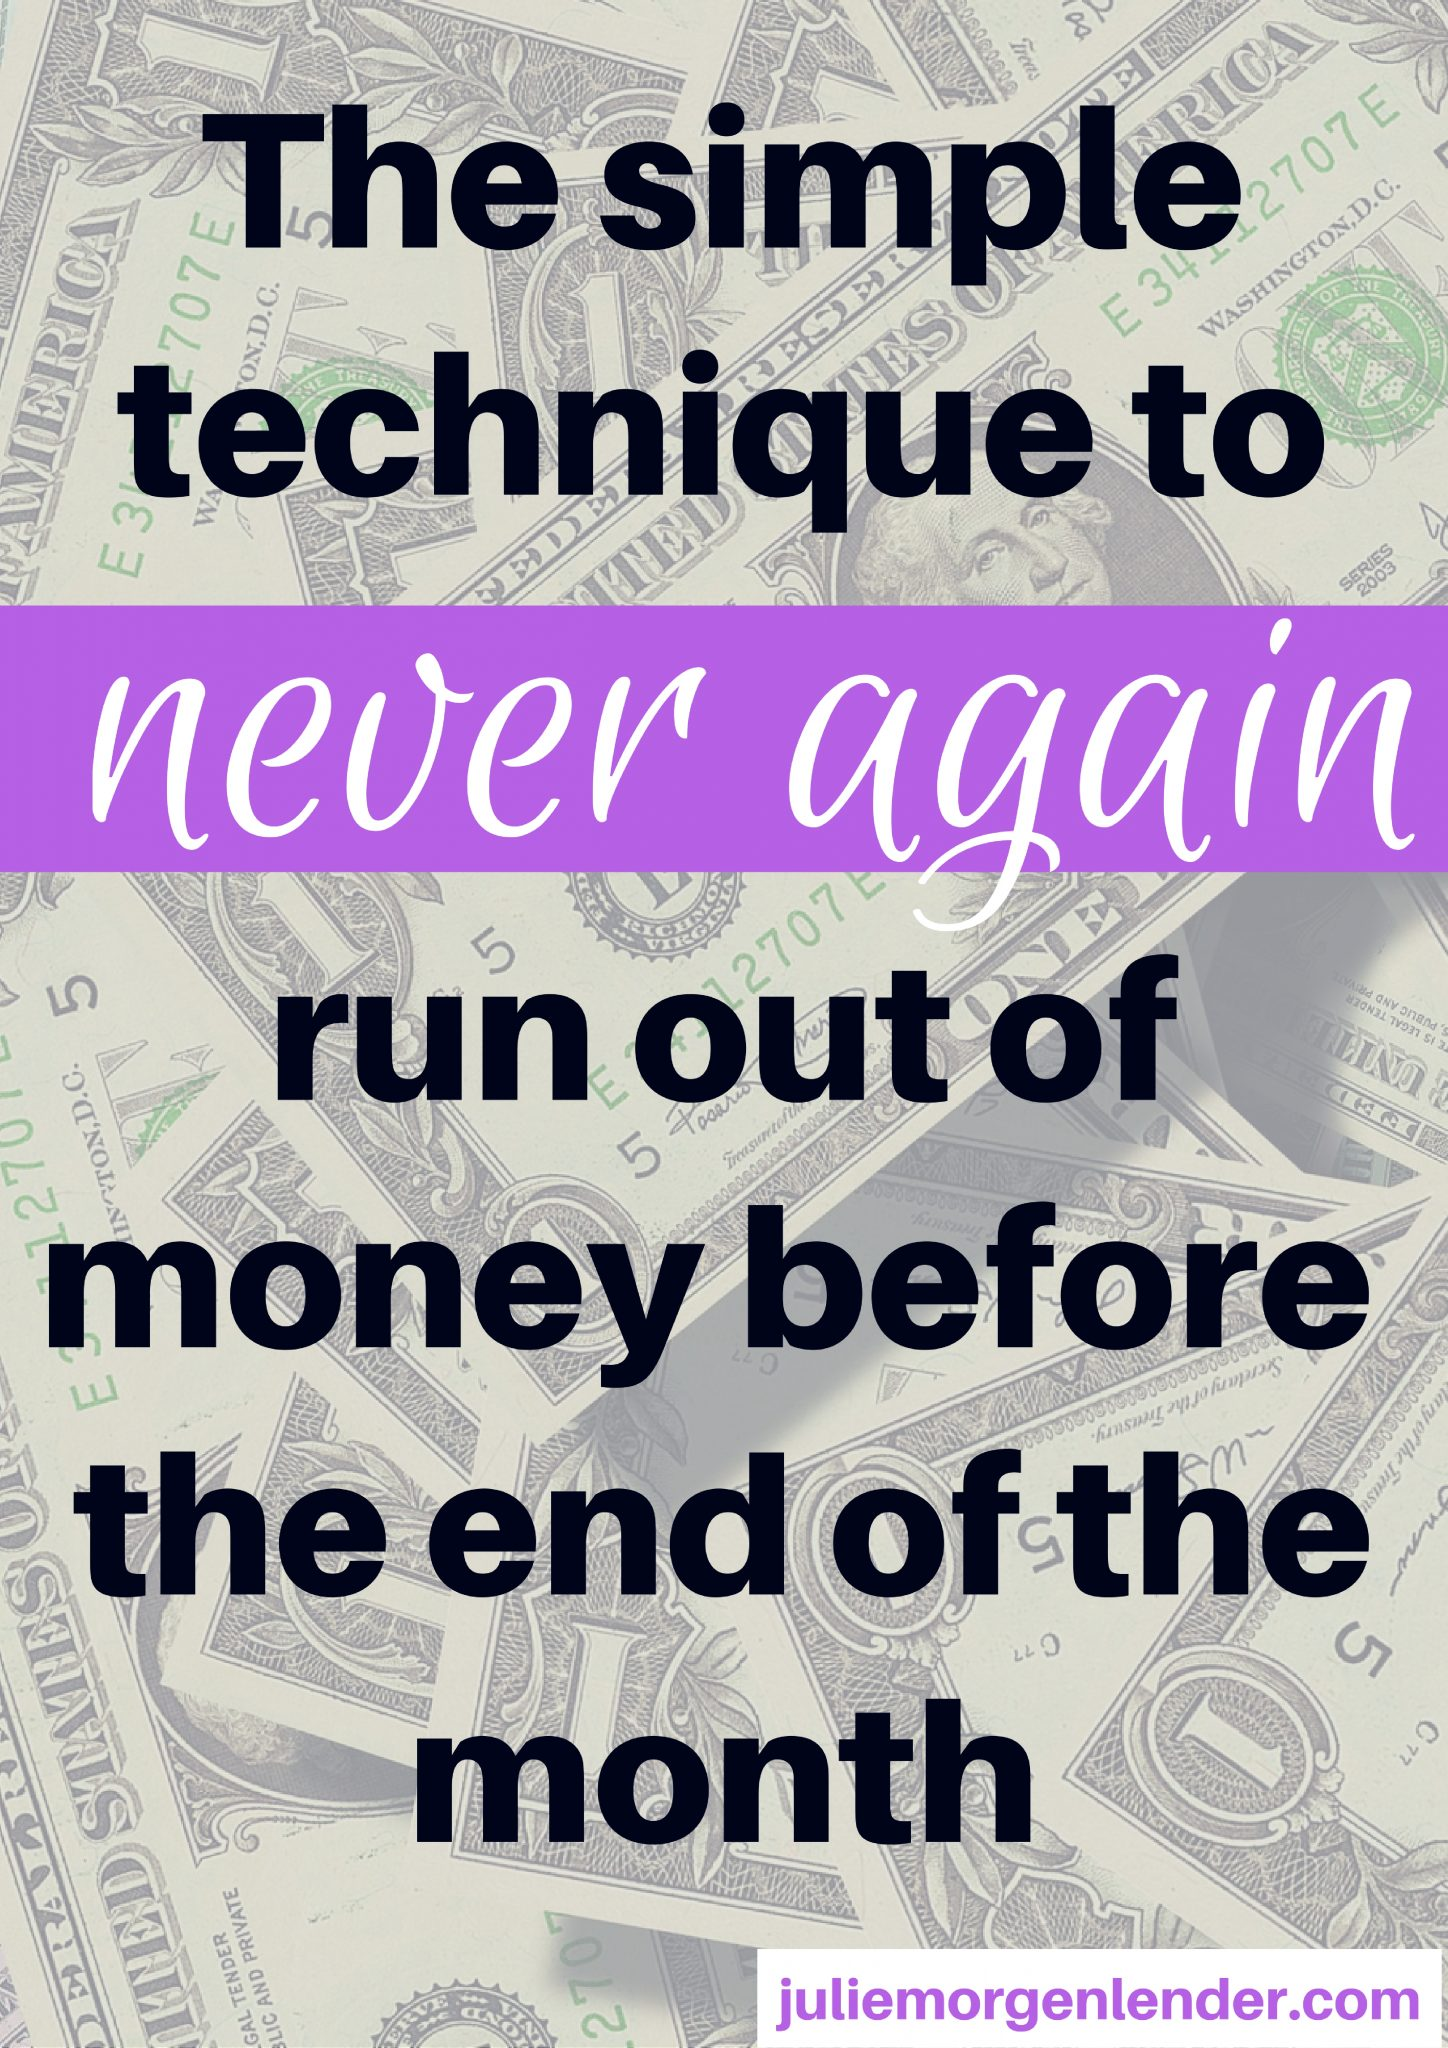 The simple technique to never again run out of money before the end of the month